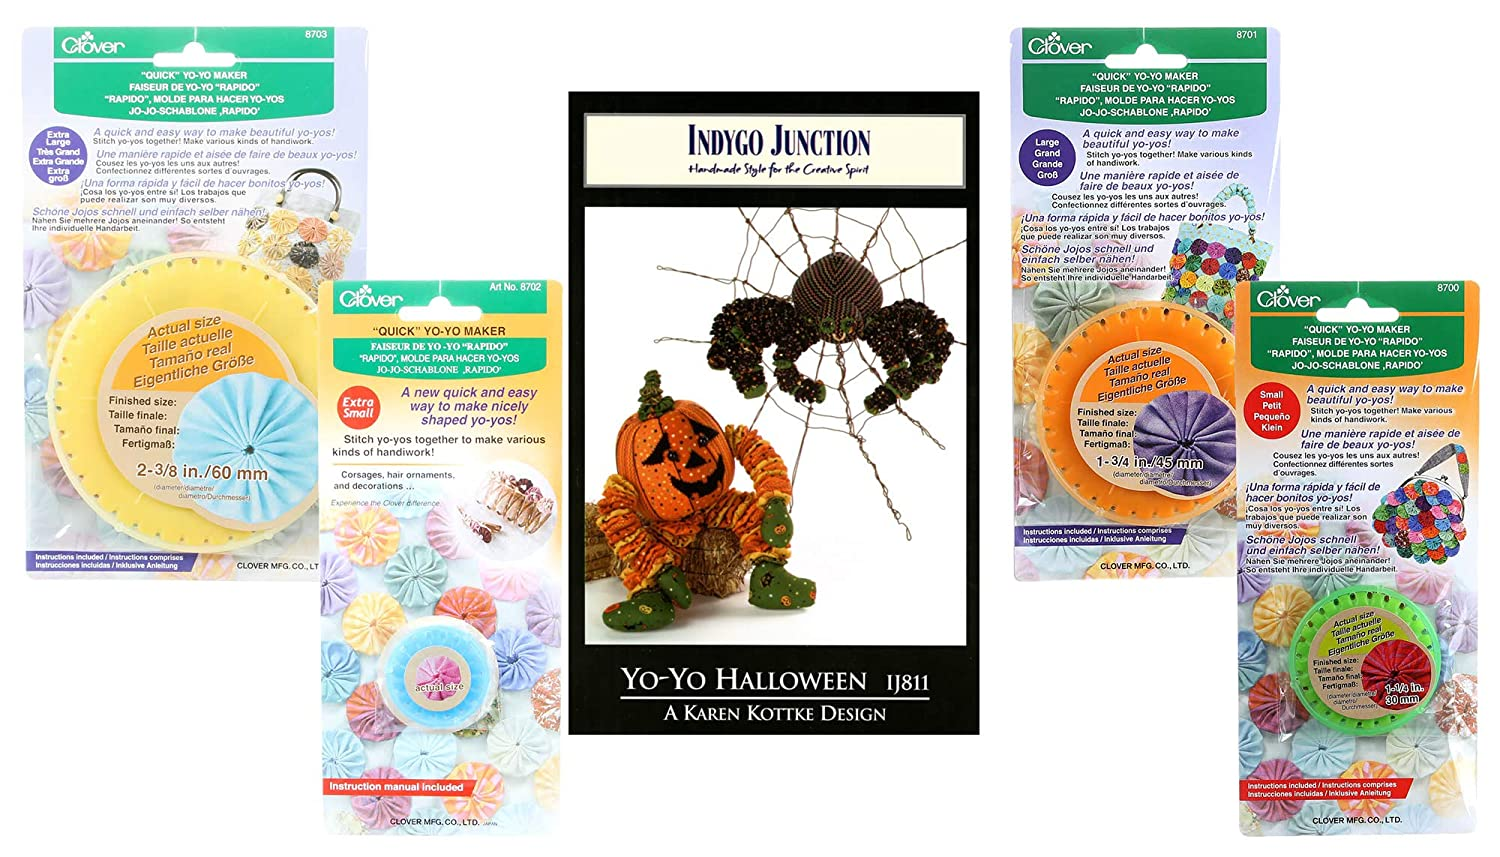 Amazon.com: Yo-Yo Halloween Kit Bundle Including Pattern by Indygo Junction and Extra Large, Large, Small, and Extra Small, Clover Yo-Yo Makers